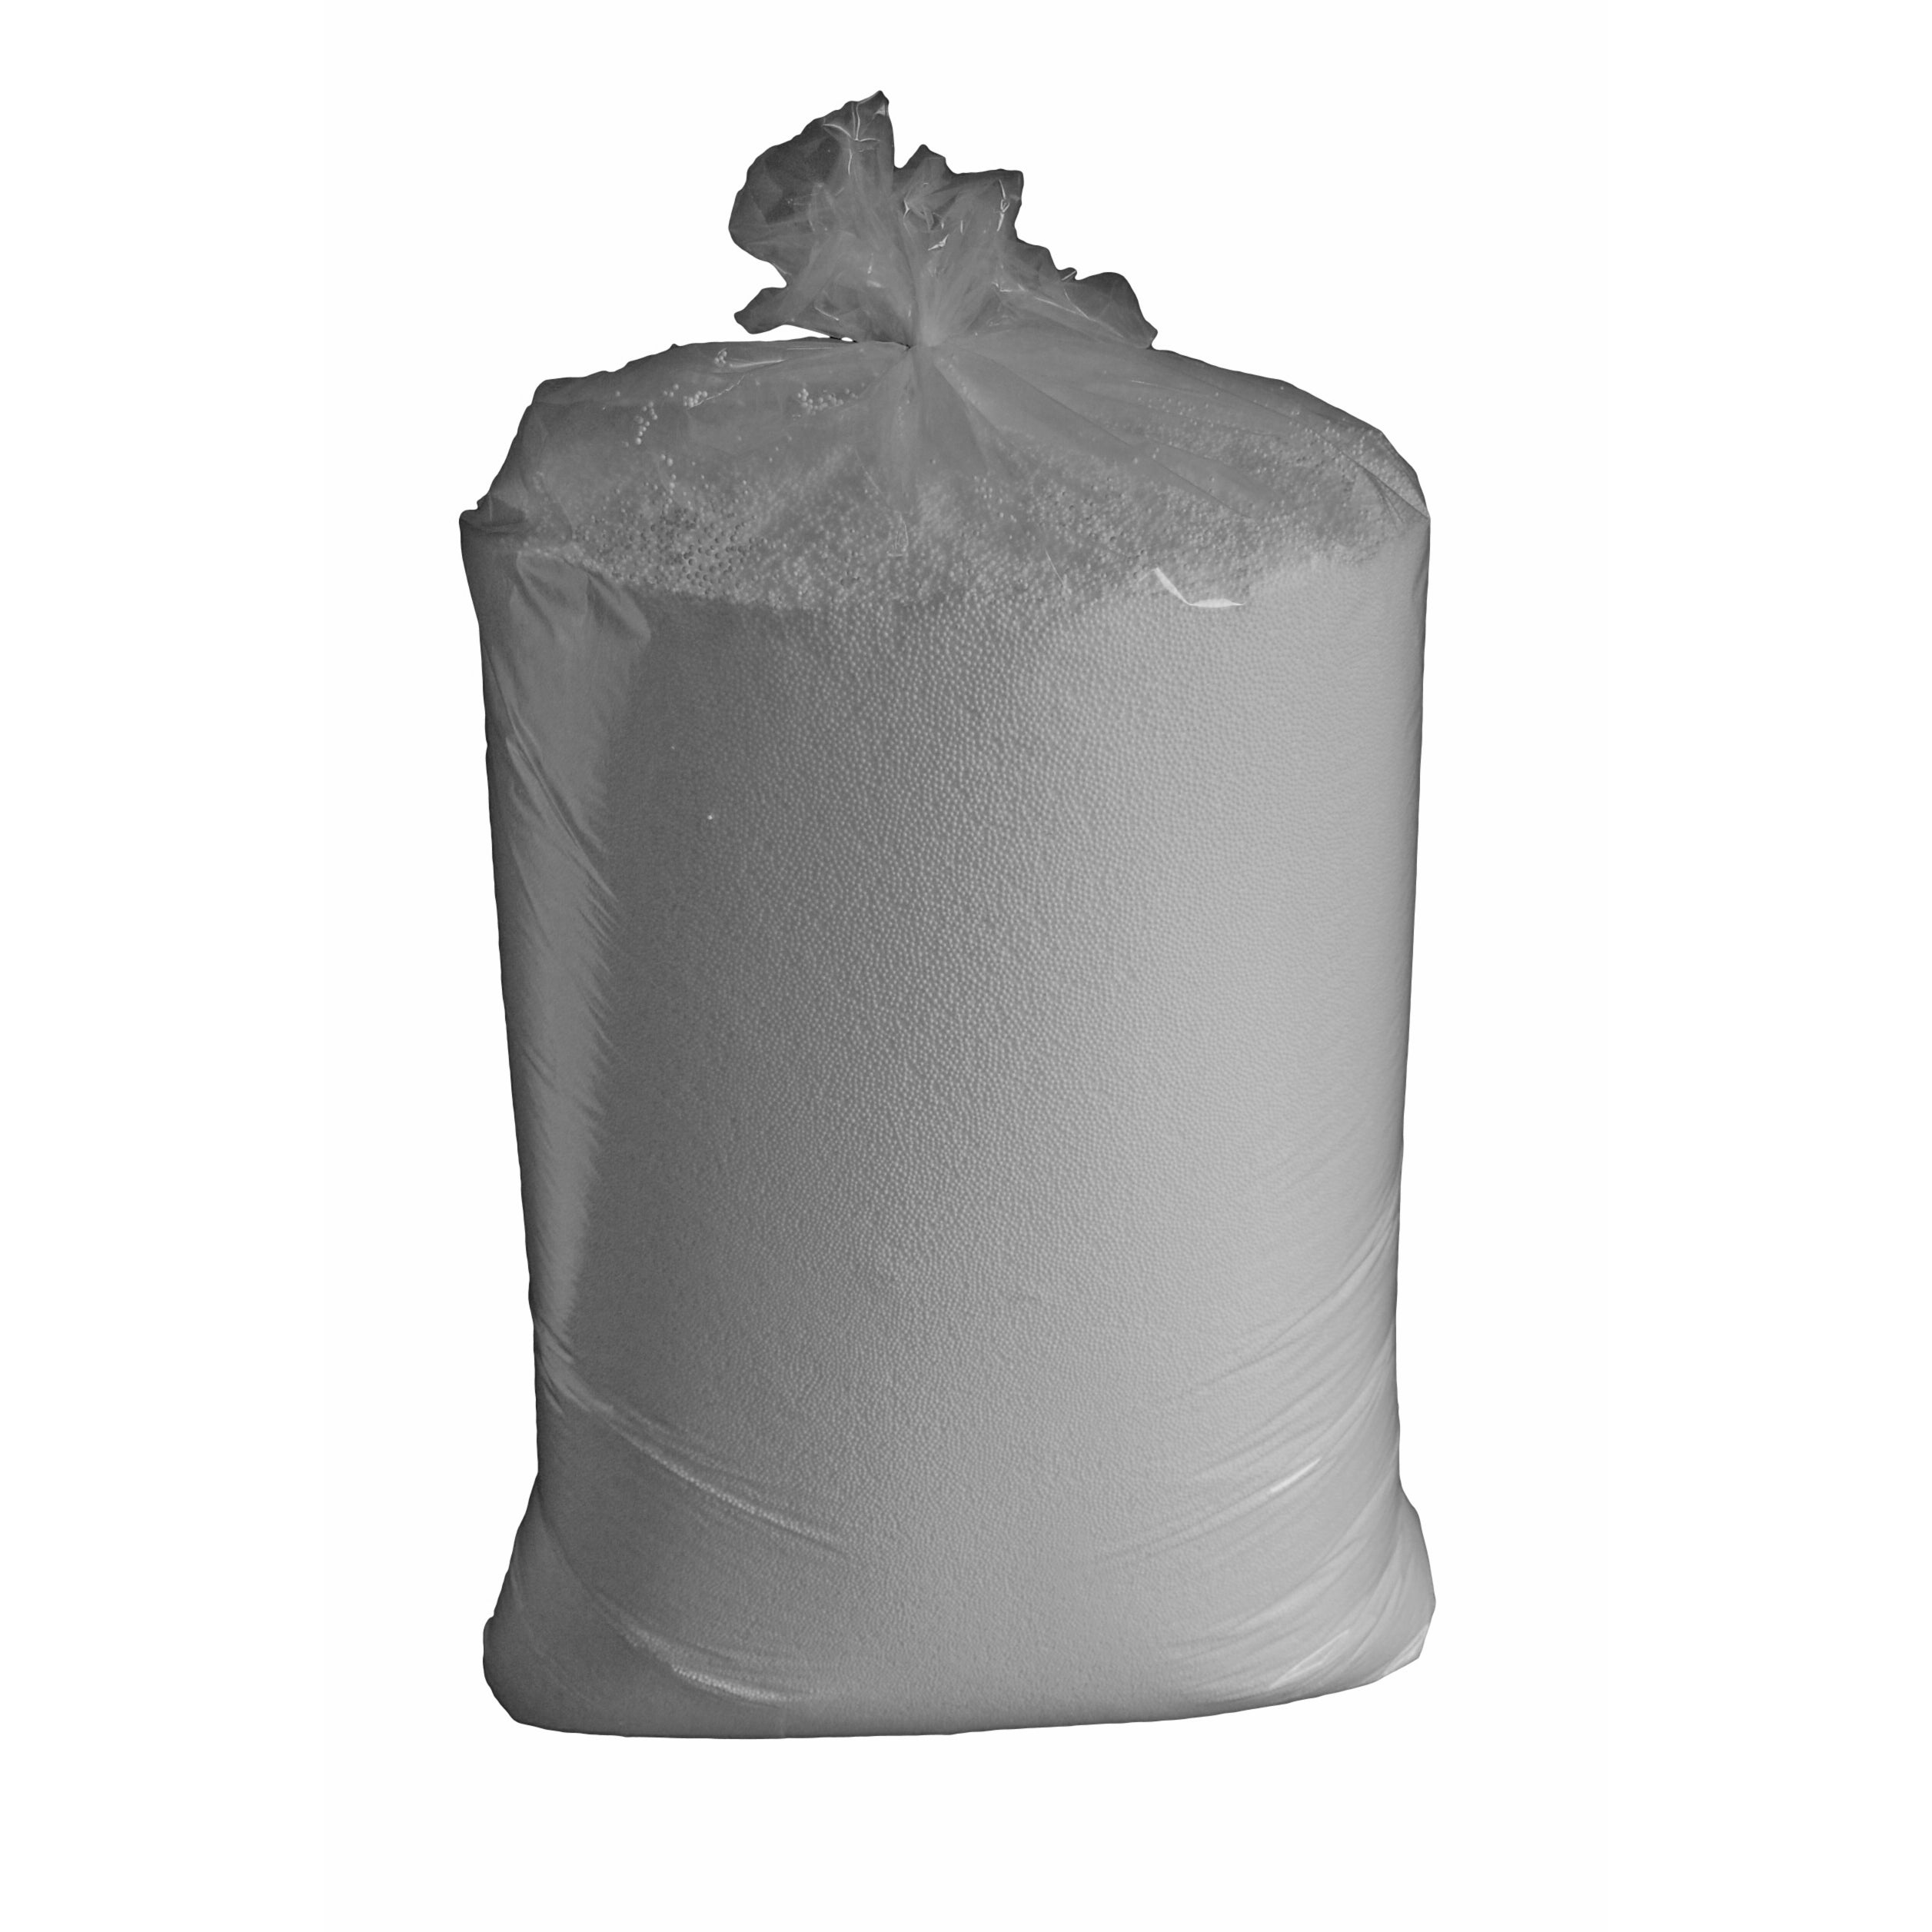 Reground Filling For Bean Bag Chairs Overstock 9237624